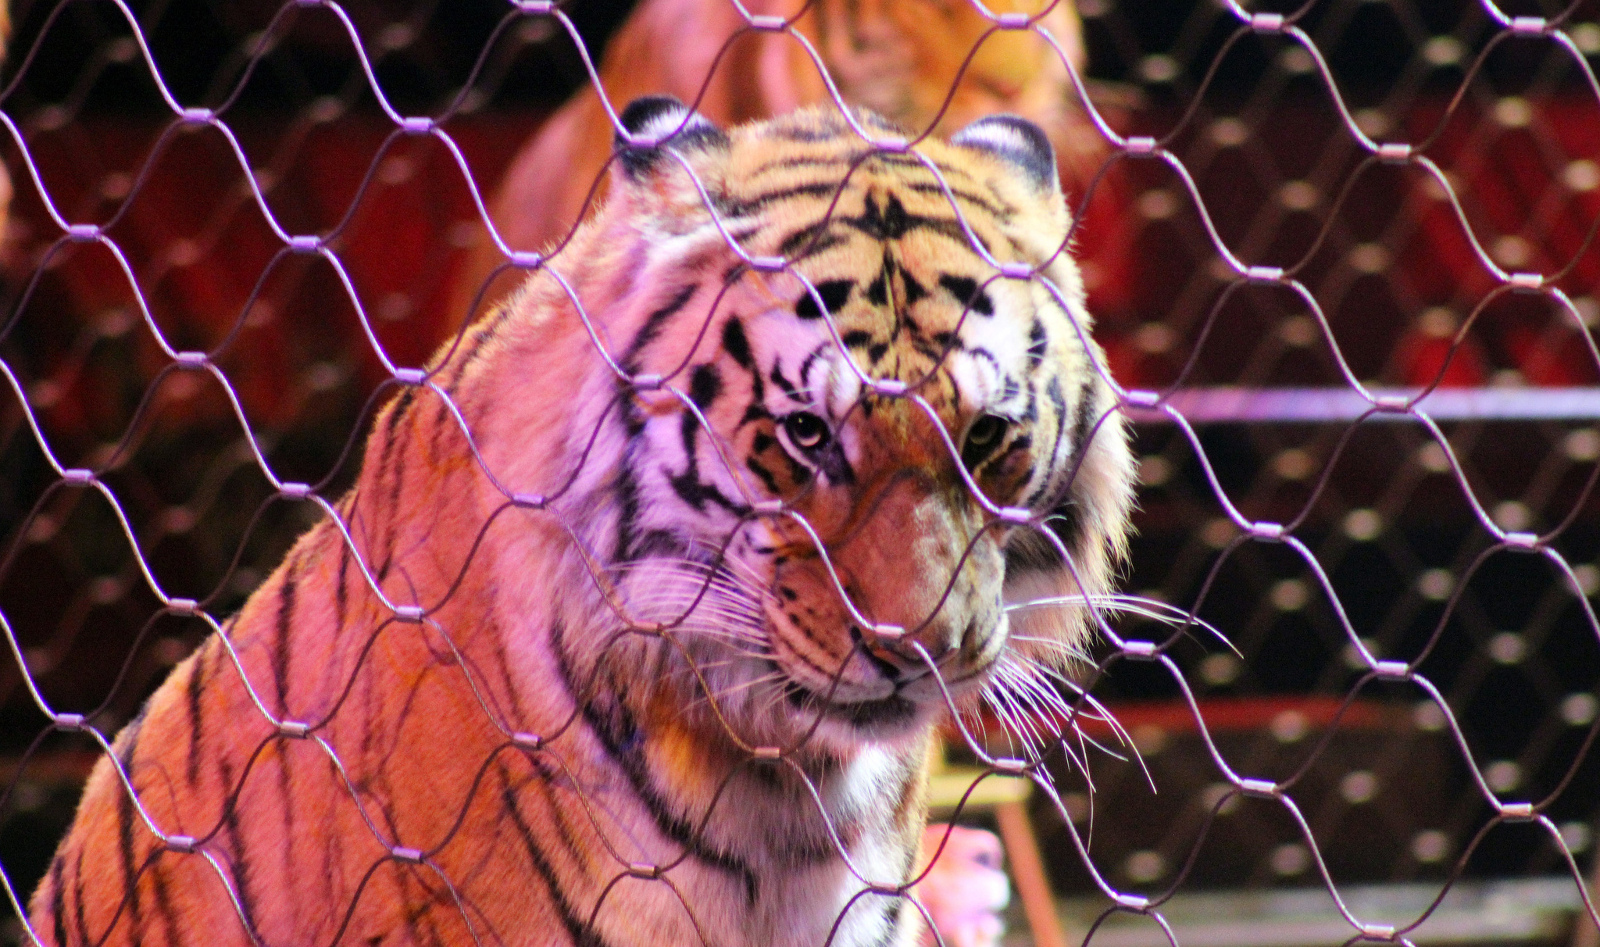 Mexico's Circus Animals Are Set to Retire in 2015, But Who Will Care For These Displaced Animals?